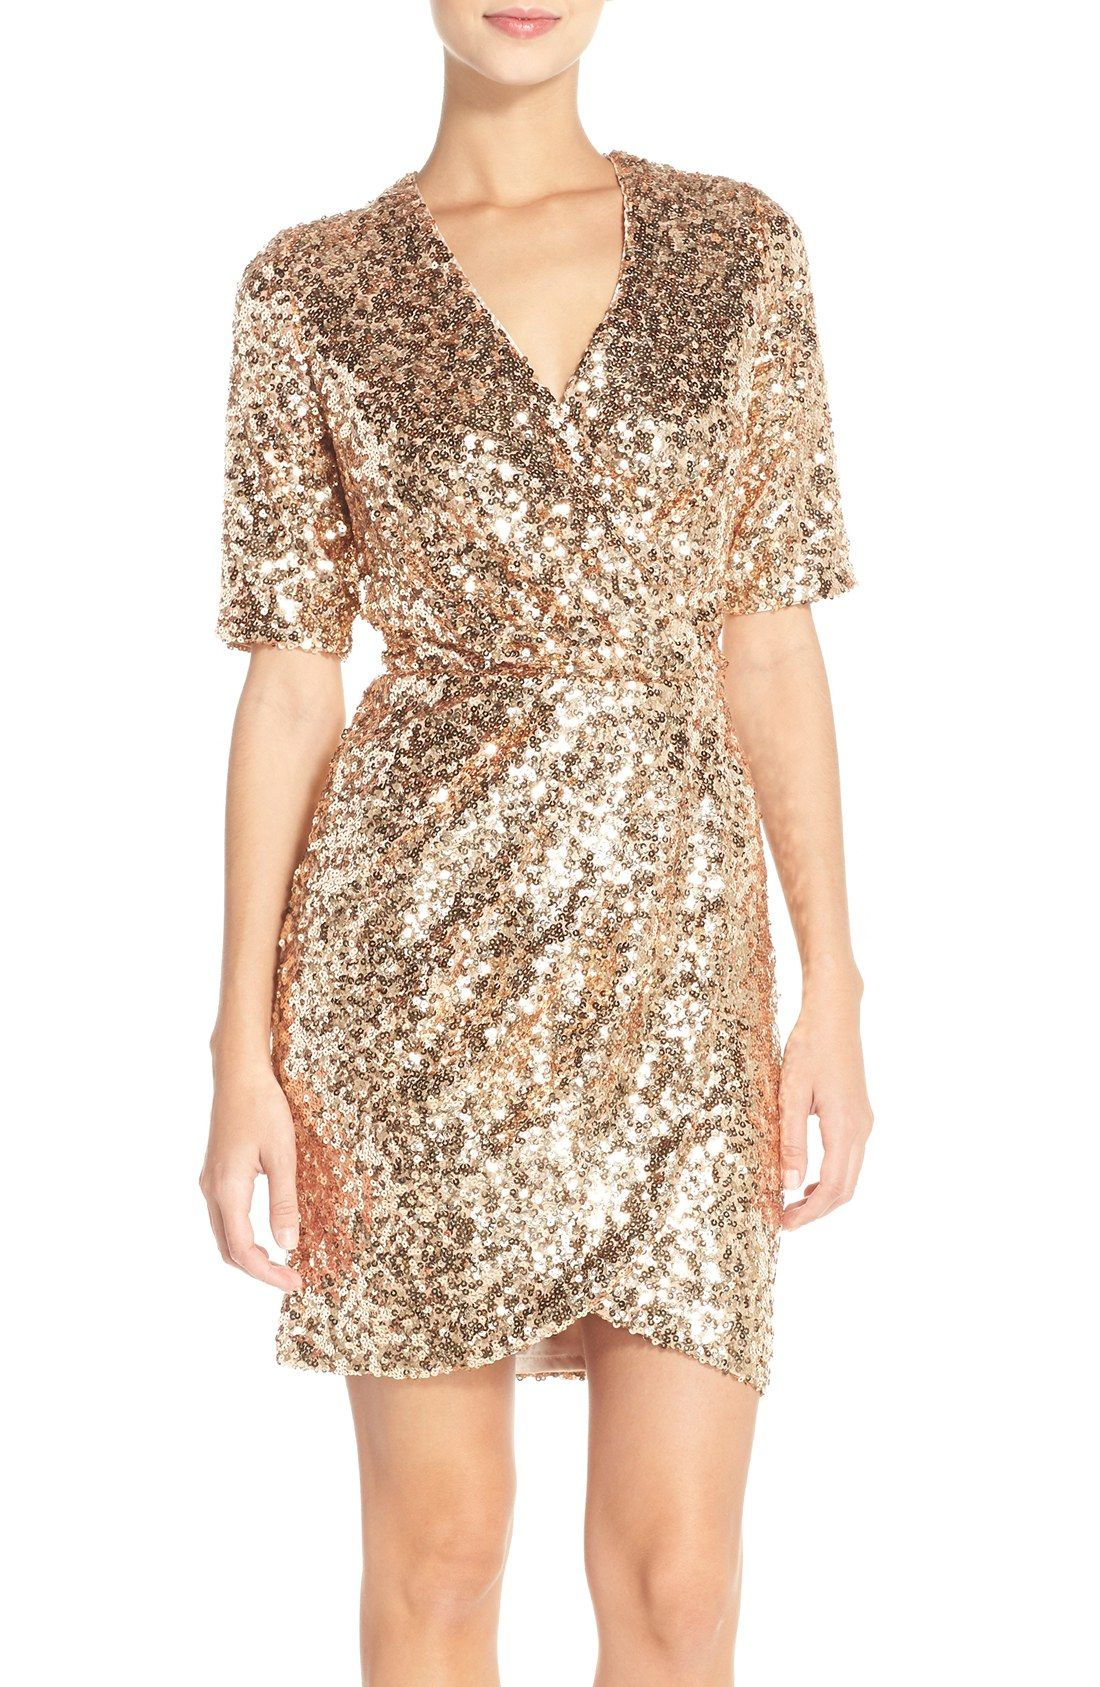 A Collection Of Dresses For The Holiday Party Season Styles For Christmas Parties Dresses Cocktail Dress Wedding Rose Gold Cocktail Dress Gold Cocktail Dress